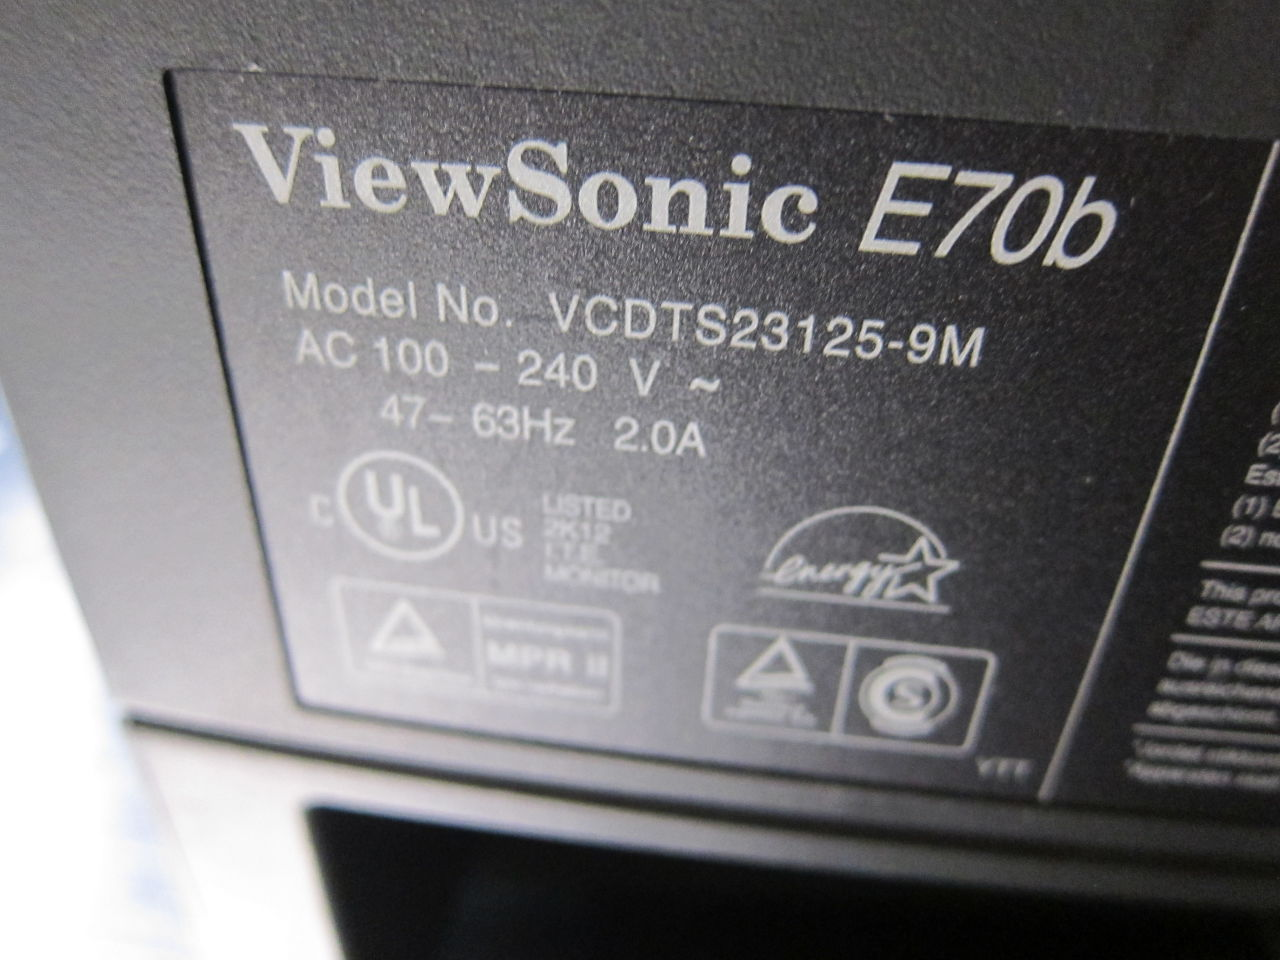 VIEWSONIC E706 Display Monitor